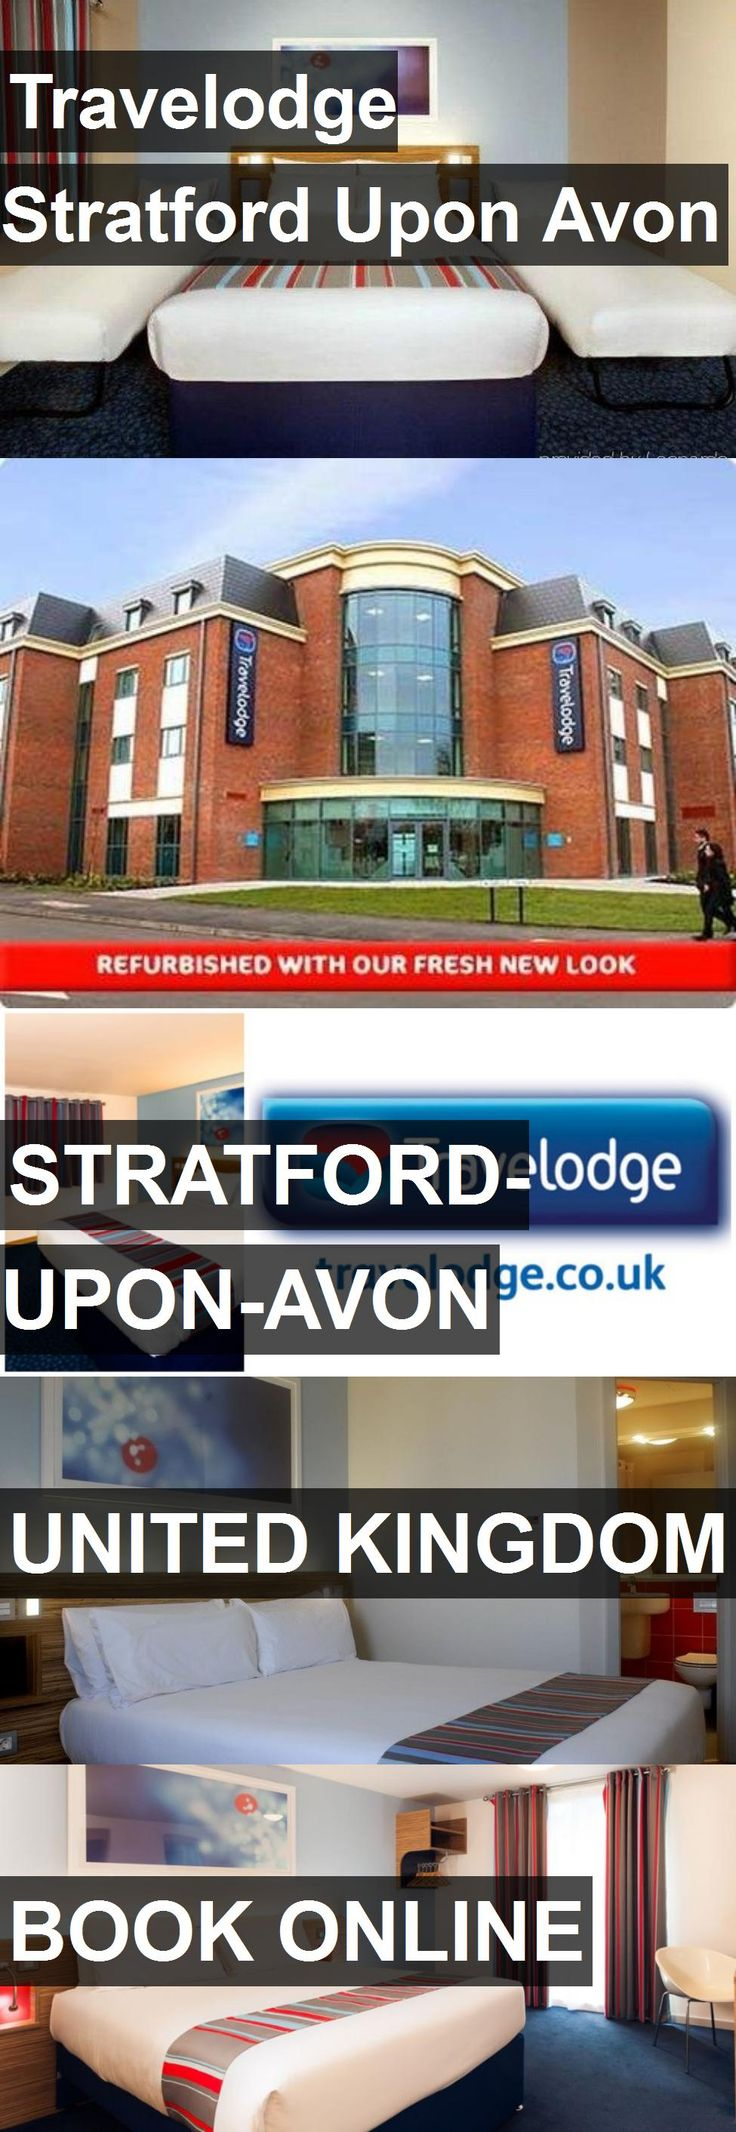 Hotel Travelodge Stratford Upon Avon in Stratford-Upon-Avon, United Kingdom. For more information, photos, reviews and best prices please follow the link. #UnitedKingdom #Stratford-Upon-Avon #TravelodgeStratfordUponAvon #hotel #travel #vacation